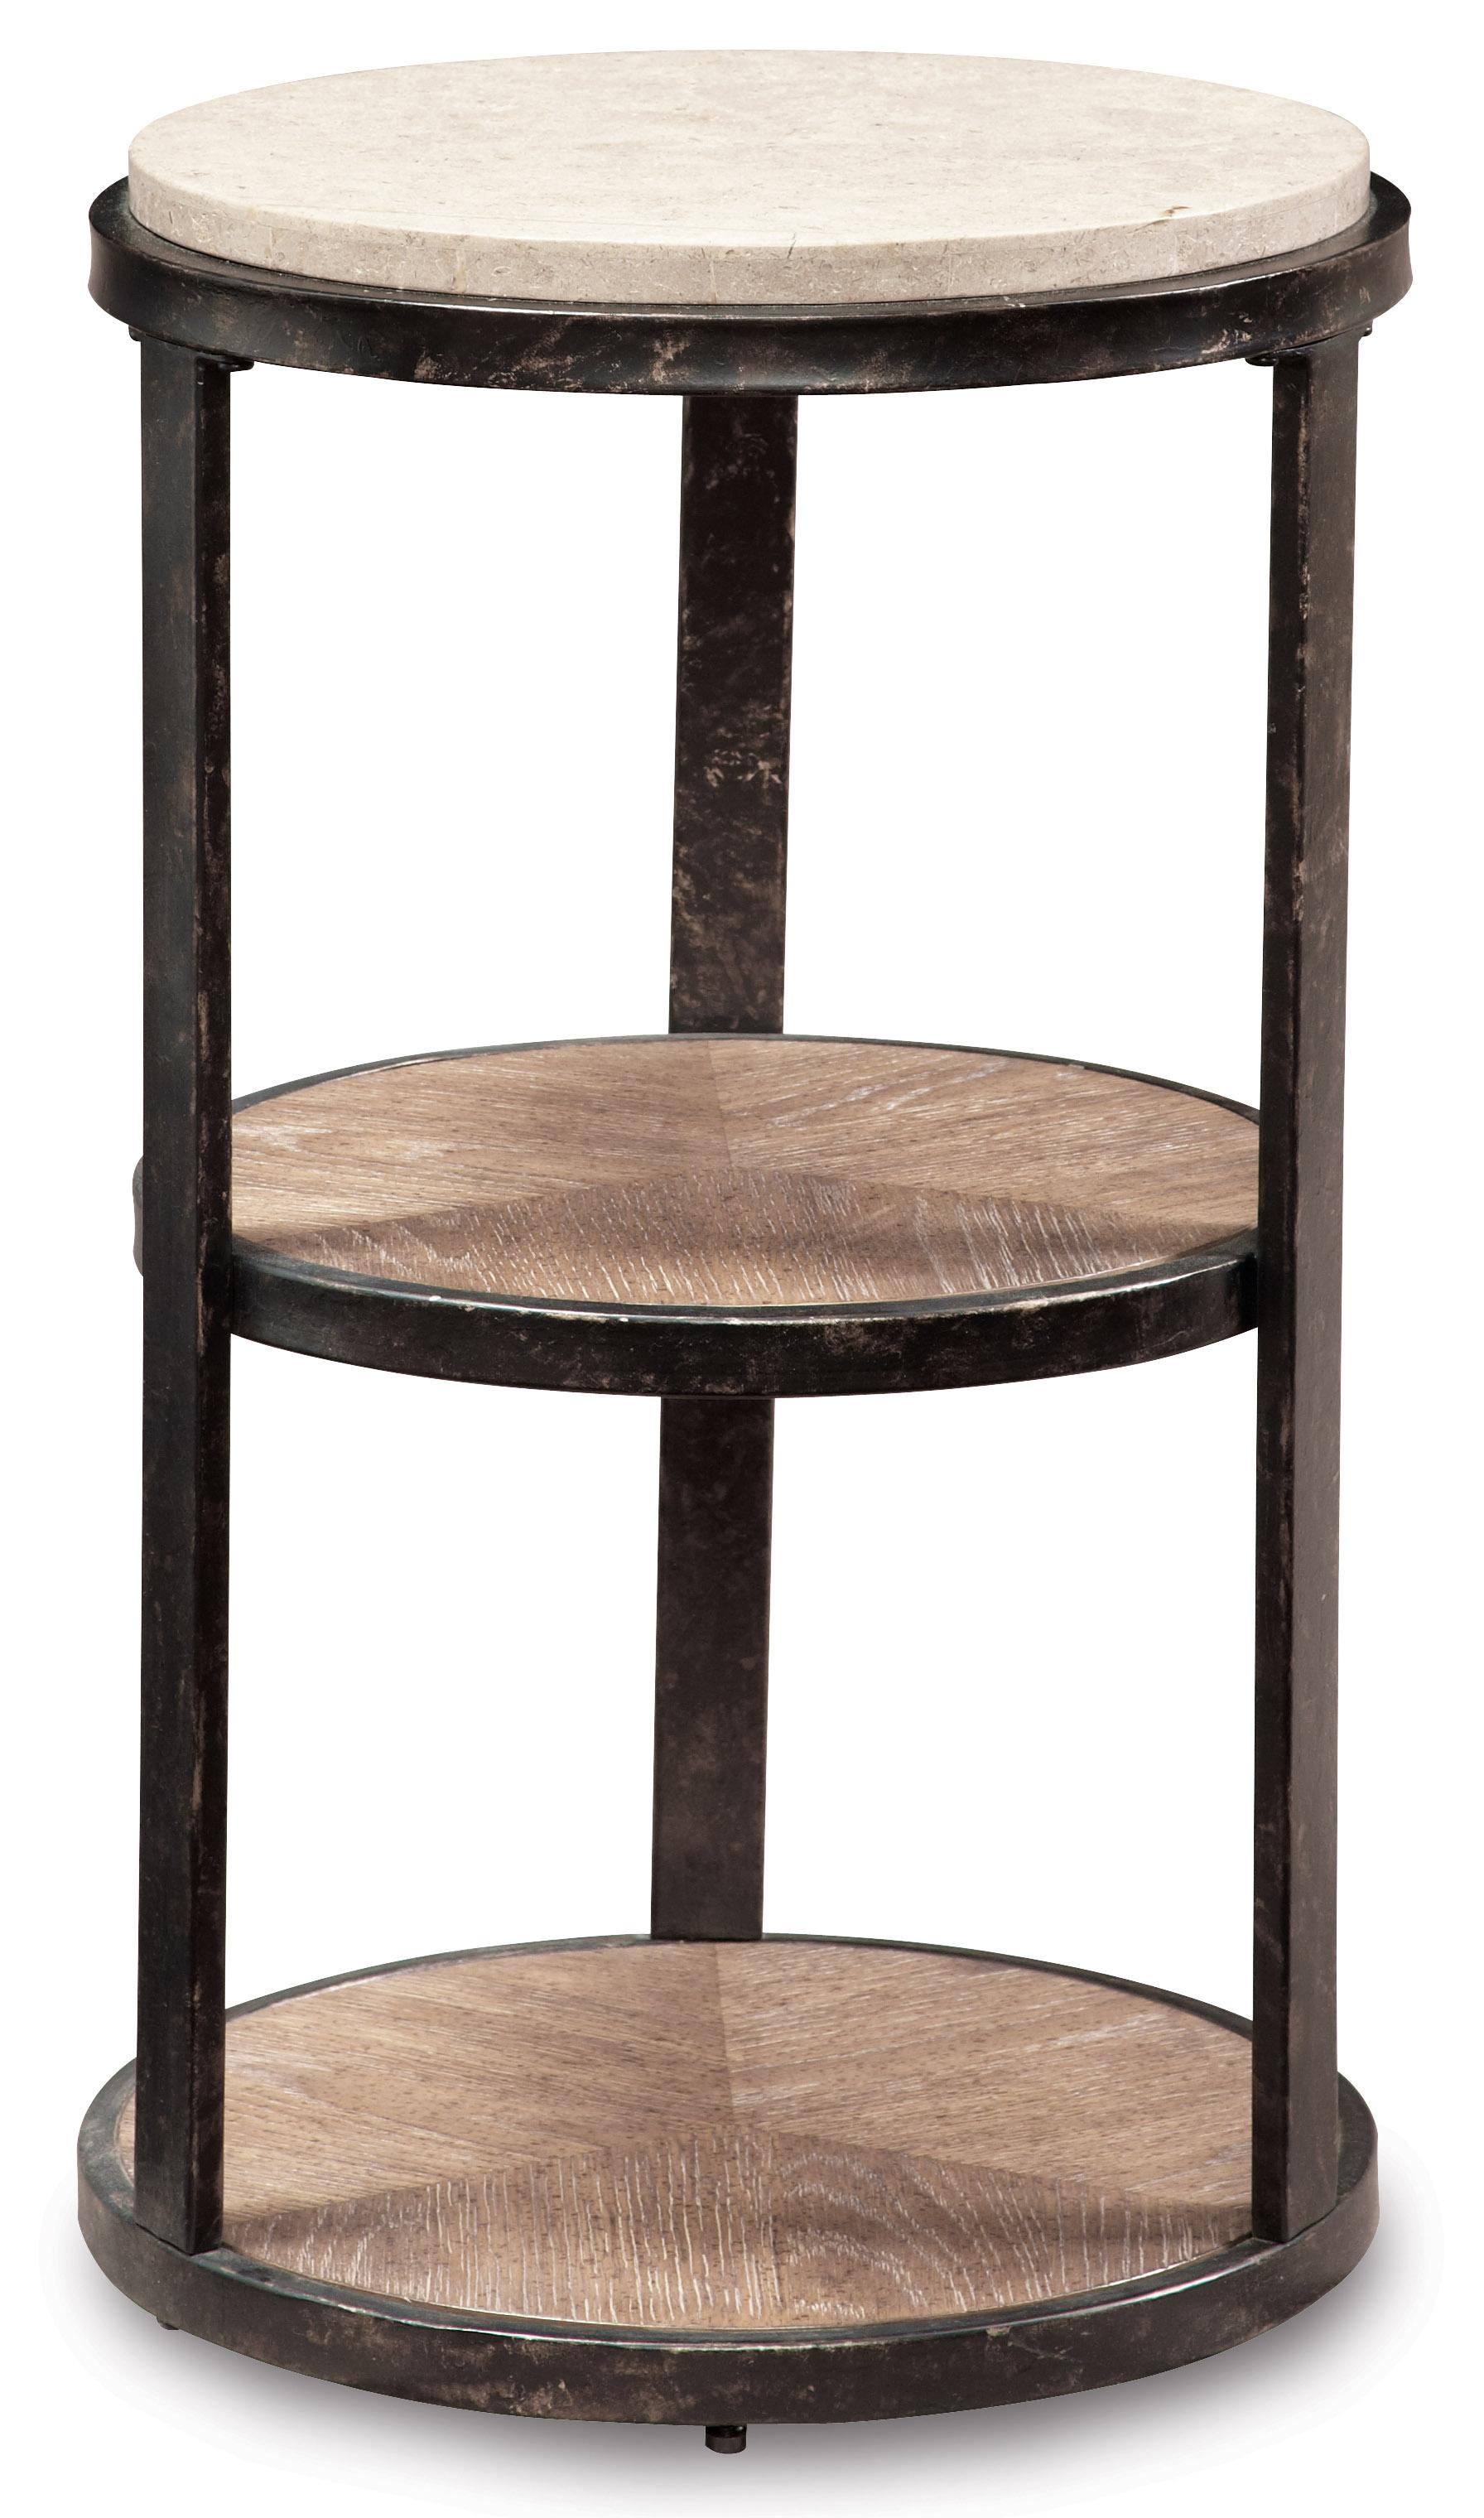 surprising unfinished round pedestal end table square black base accent small target wood tables distressed outstanding large oak white tall antique diy full size modern furniture